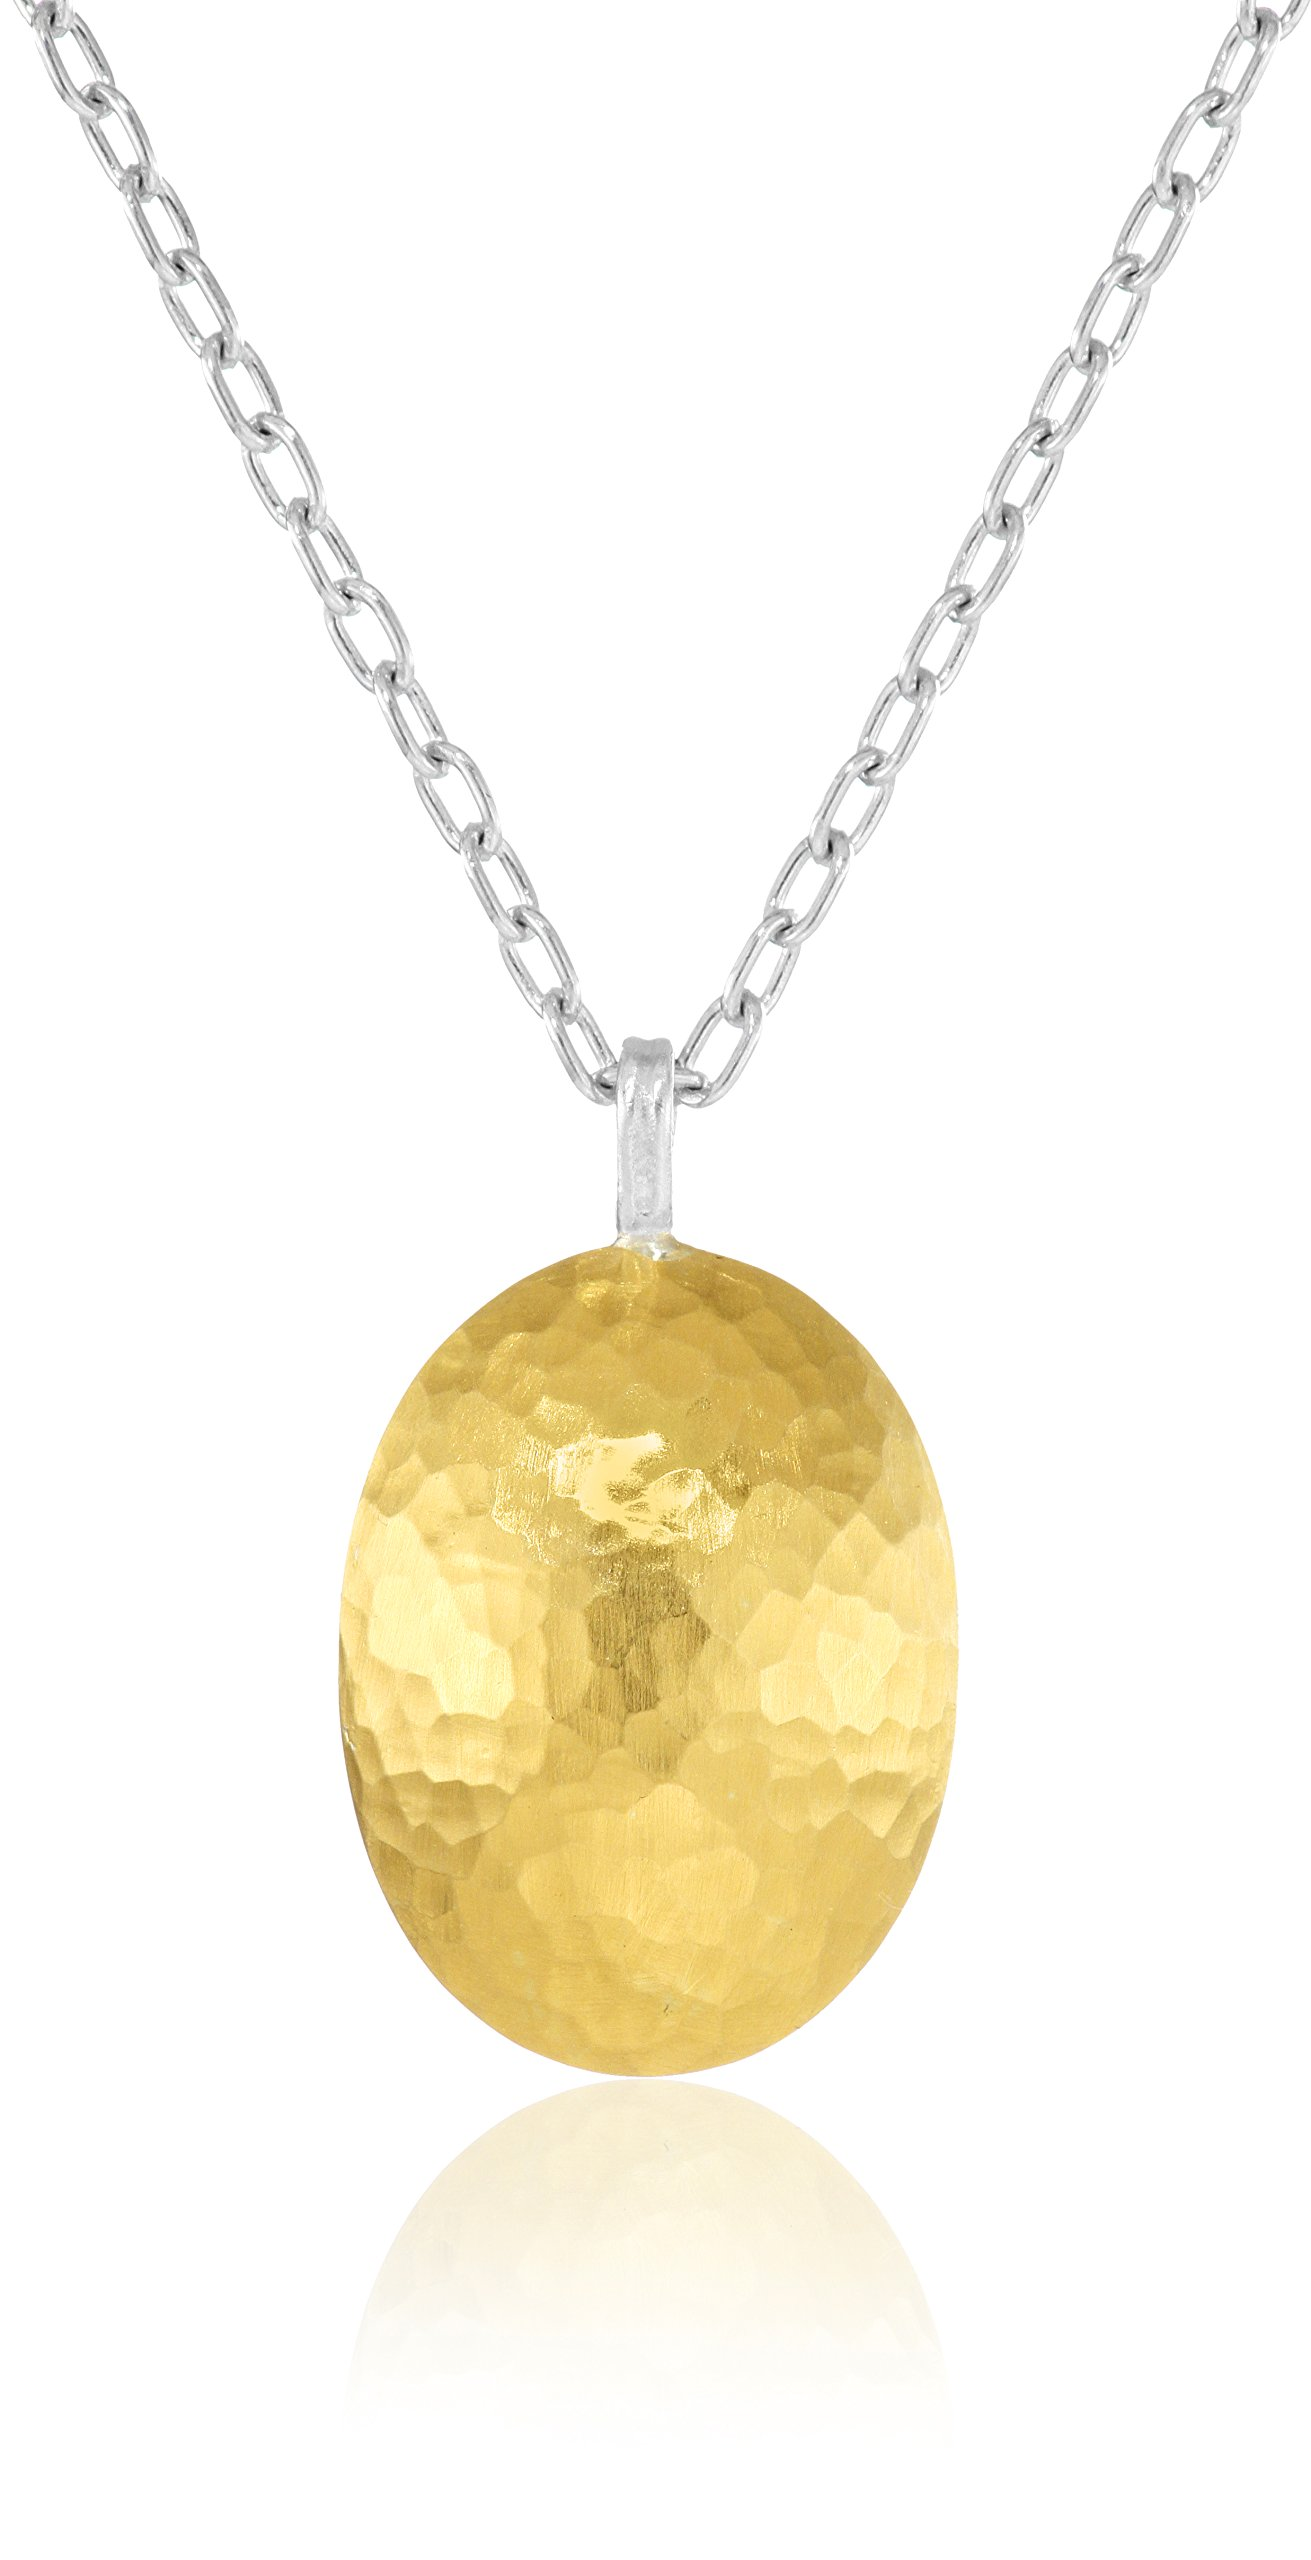 Gurhan Jordan Silver, Gold Faced Pendant Necklace